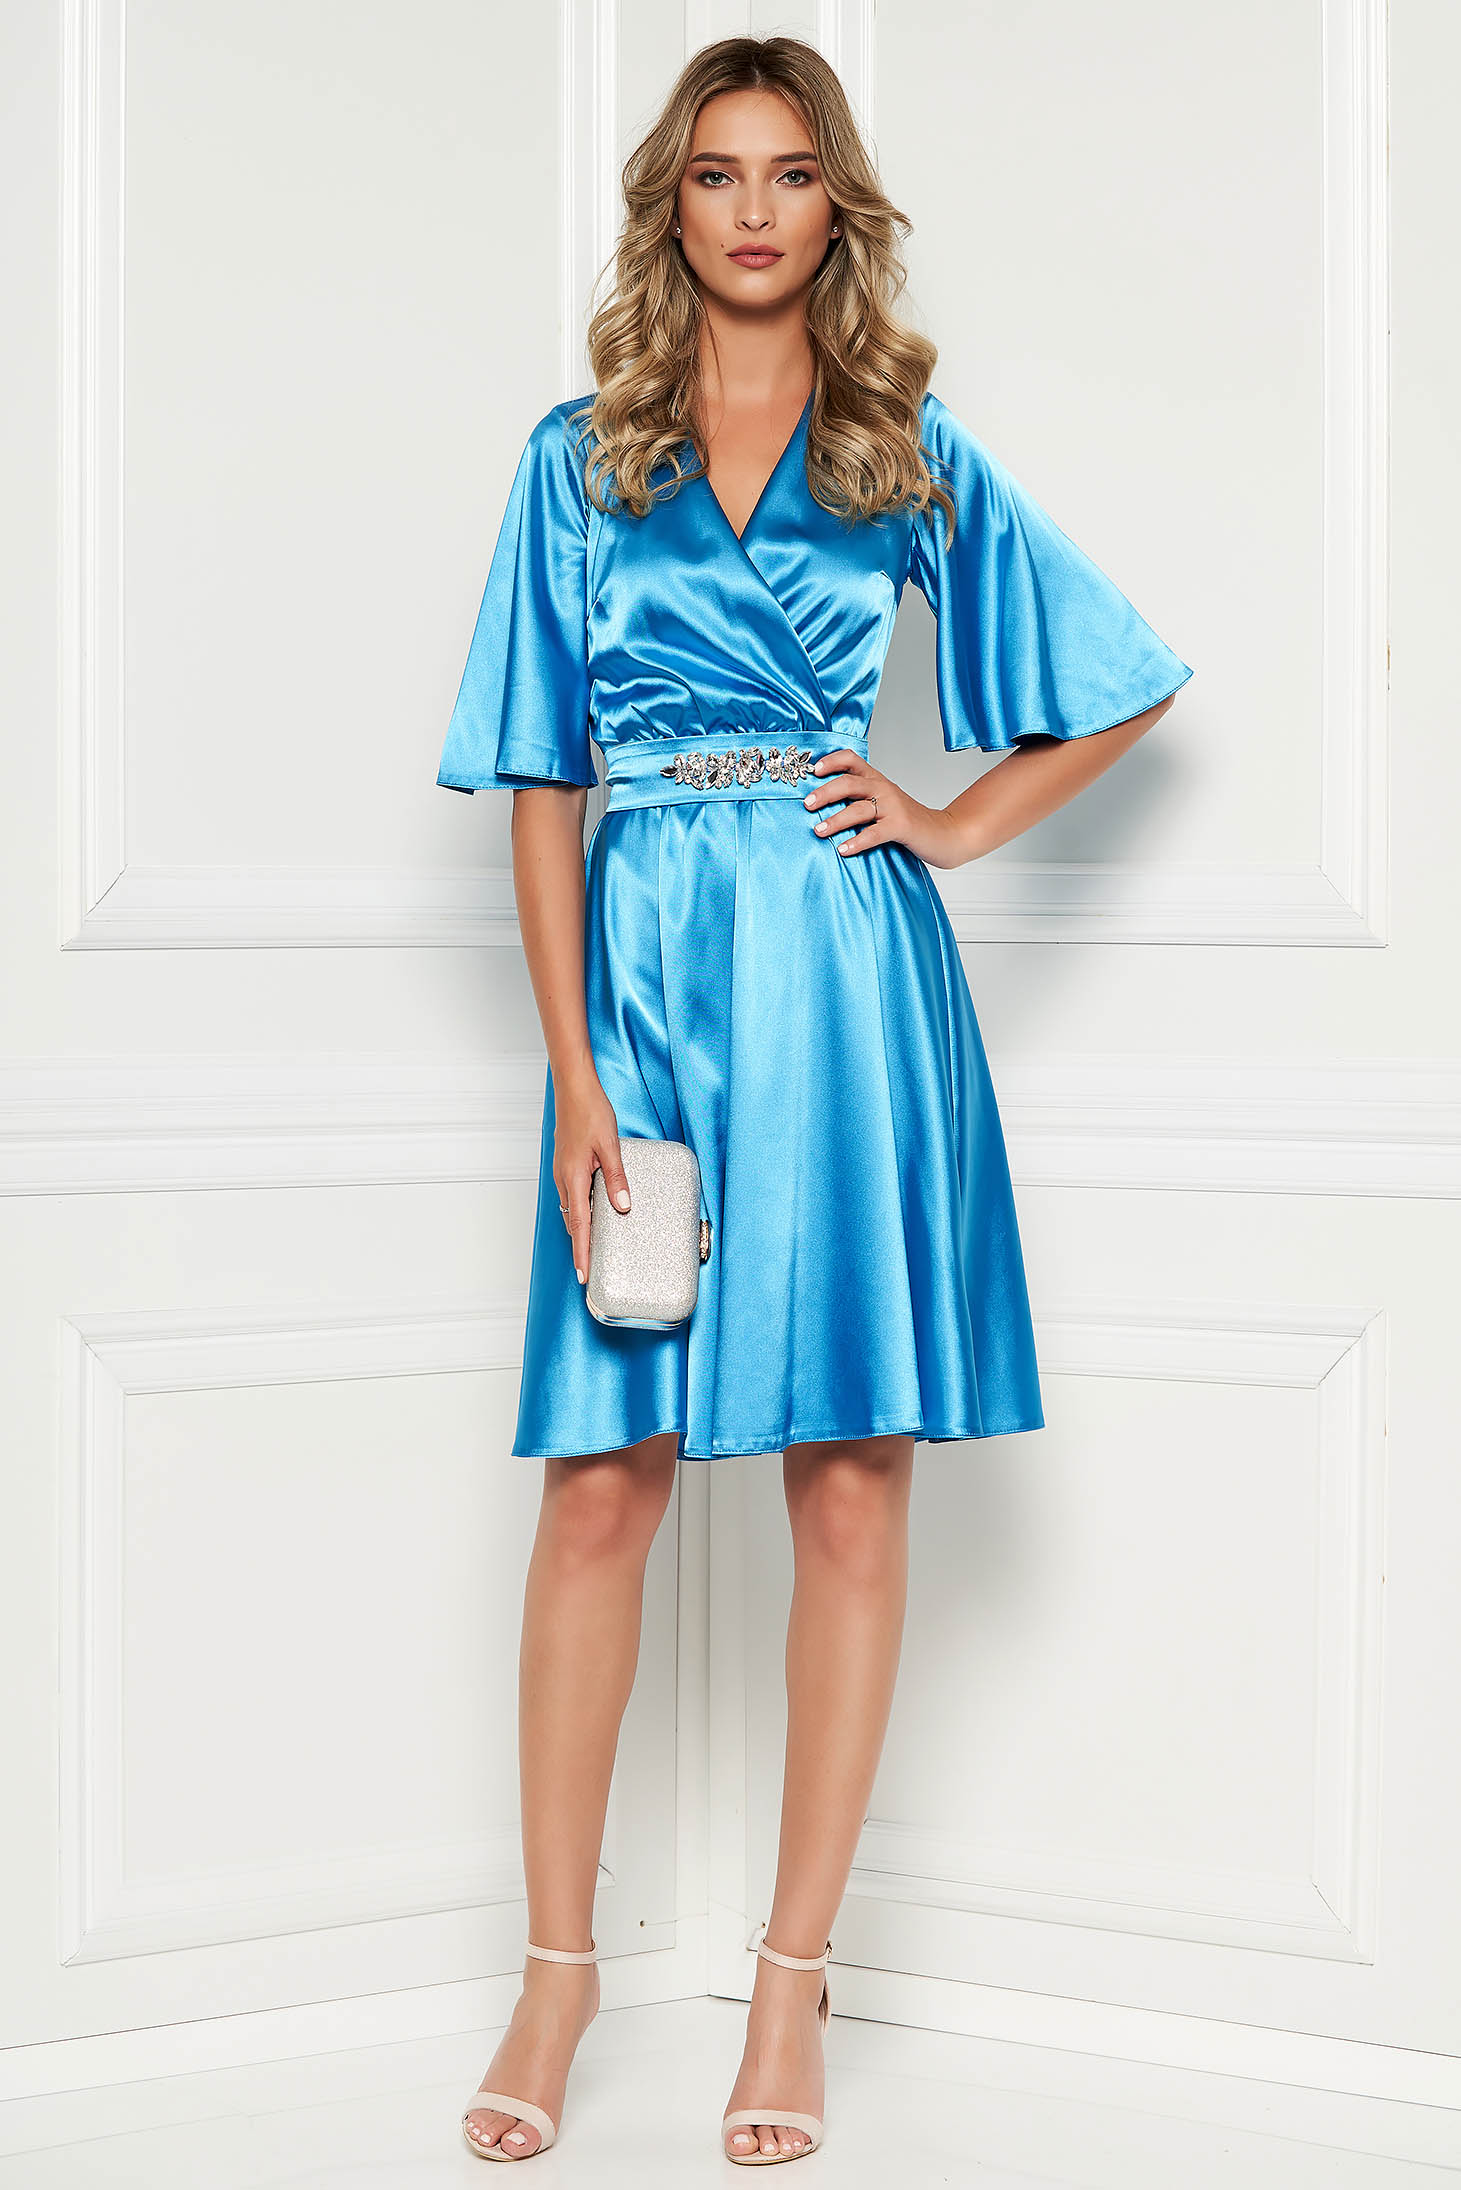 StarShinerS blue occasional dress from satin fabric texture with inside lining accessorized with tied waistband with embellished accessories